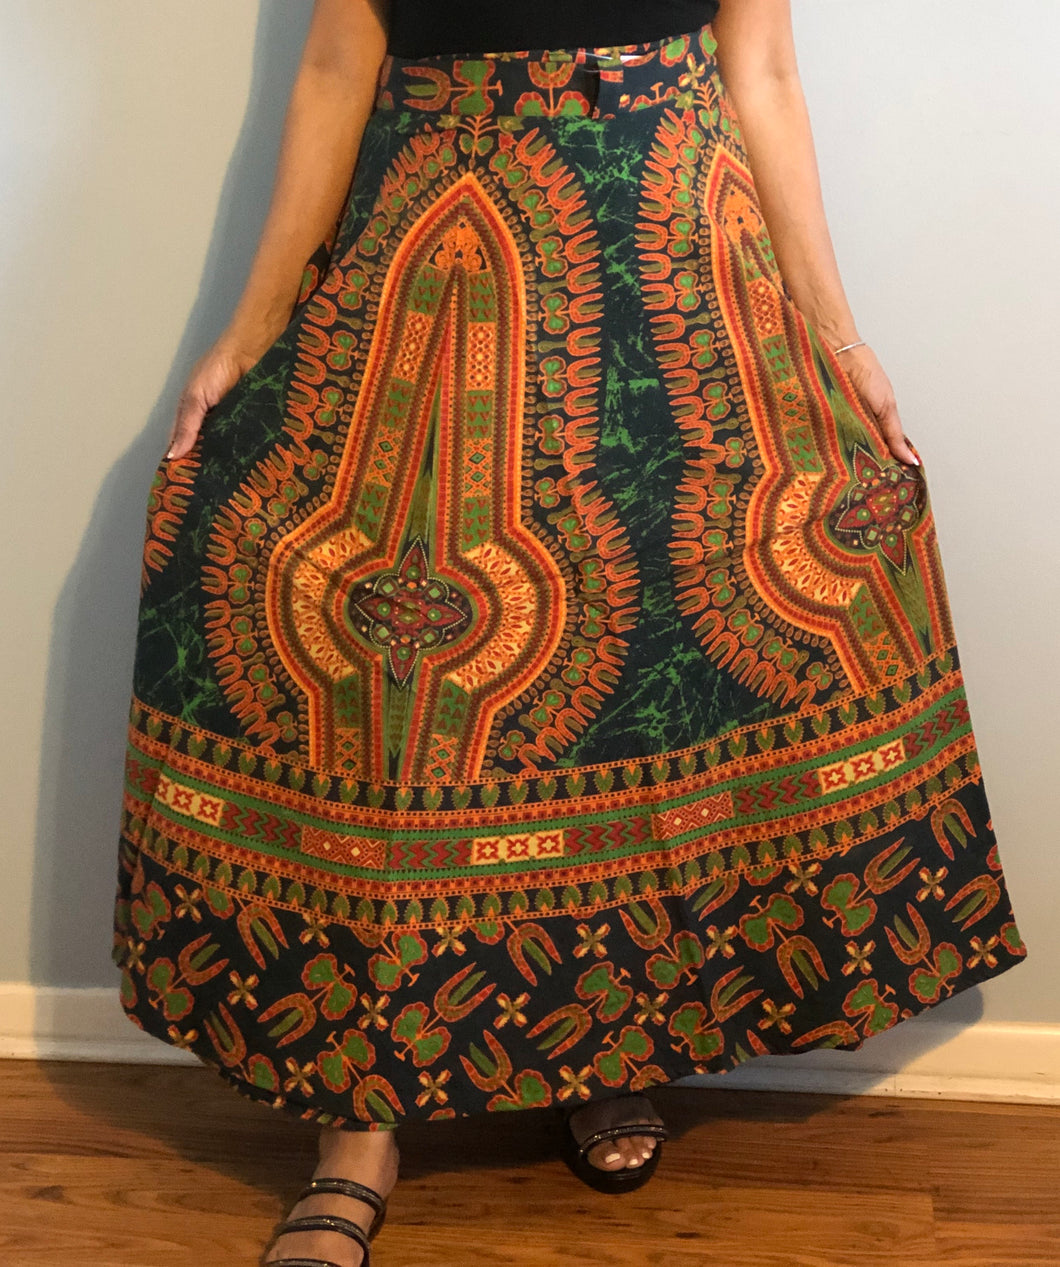 100% Cotton Wrap Skirt! Dashiki Print! One Size Fits Most!